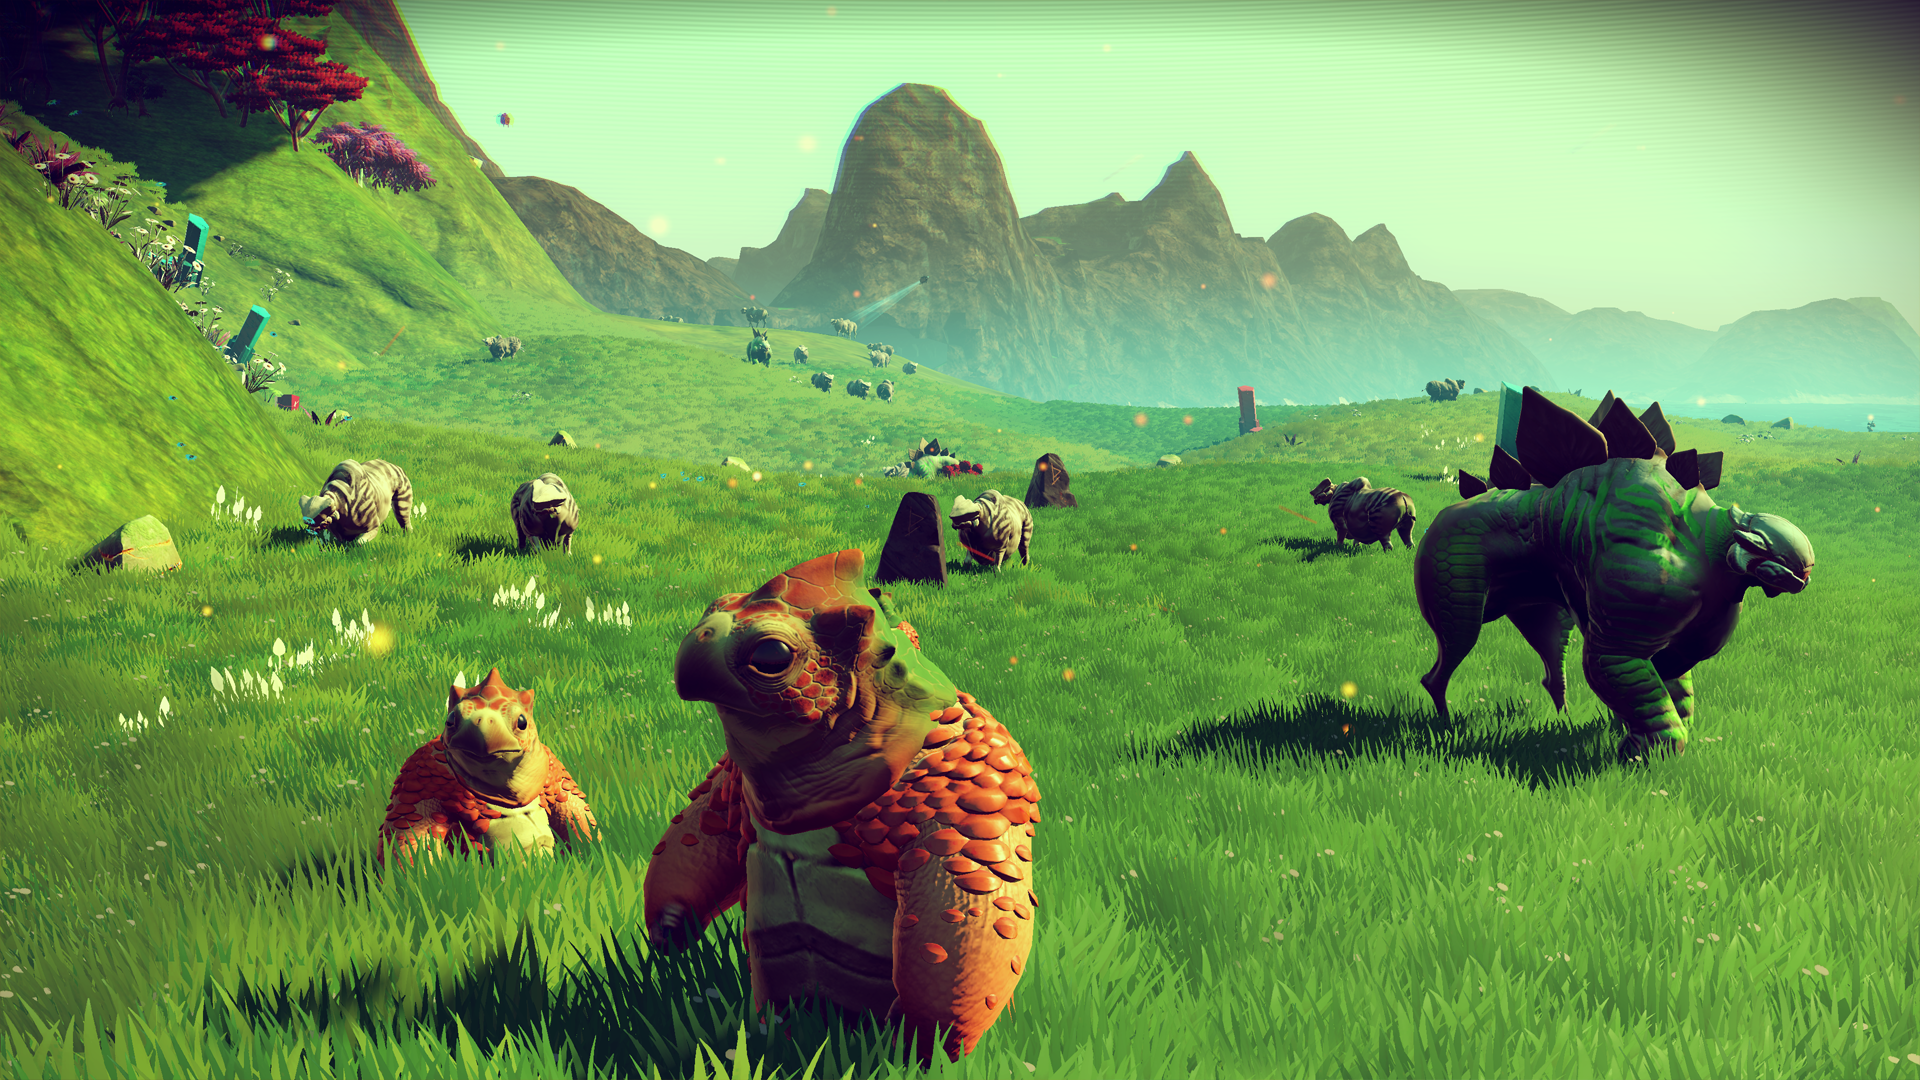 A Look At How No Man's Sky's Procedural Generation Works